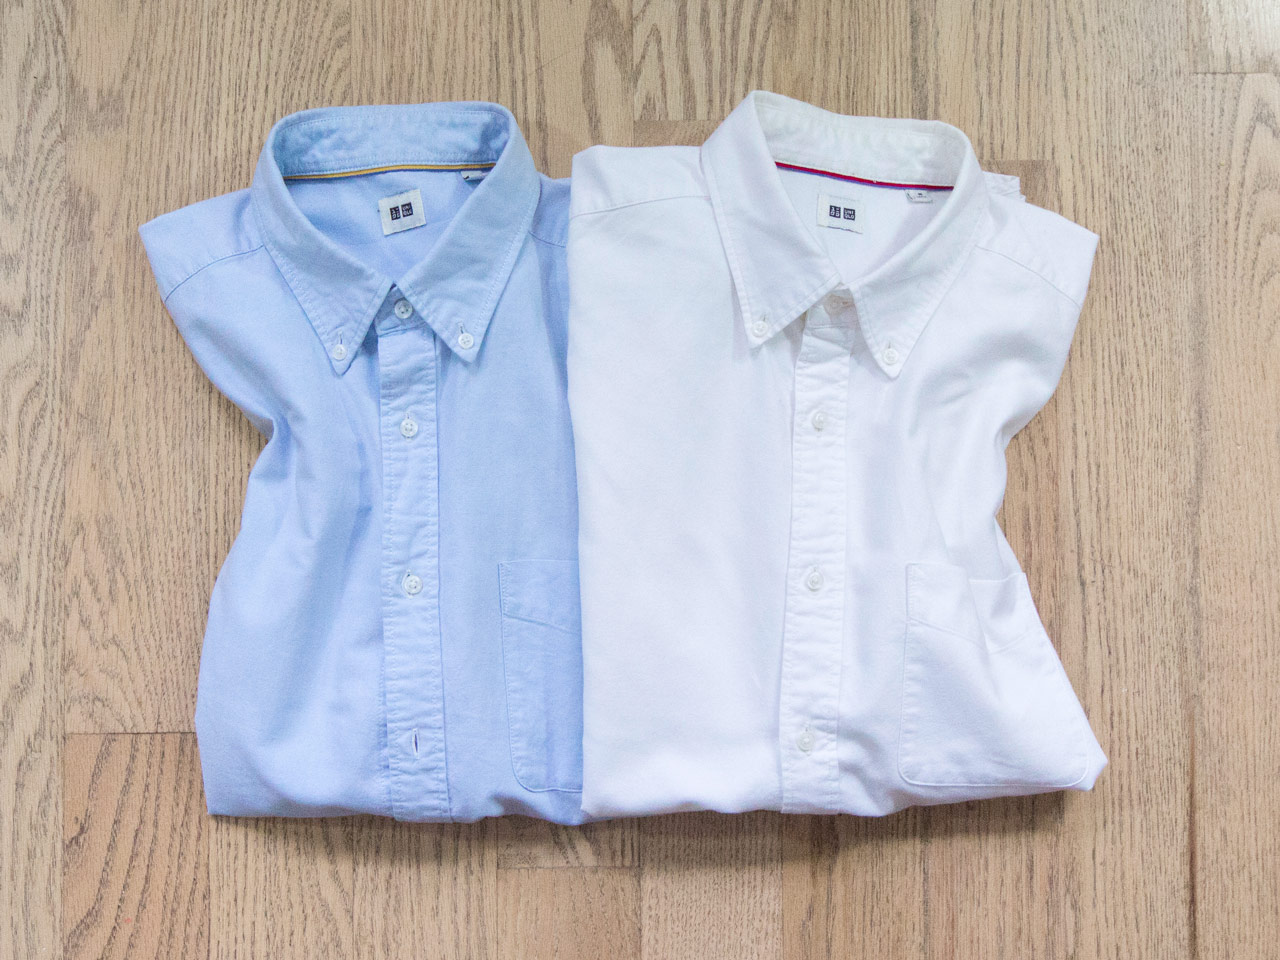 effortless essentials minimalist wardrobe - shirts